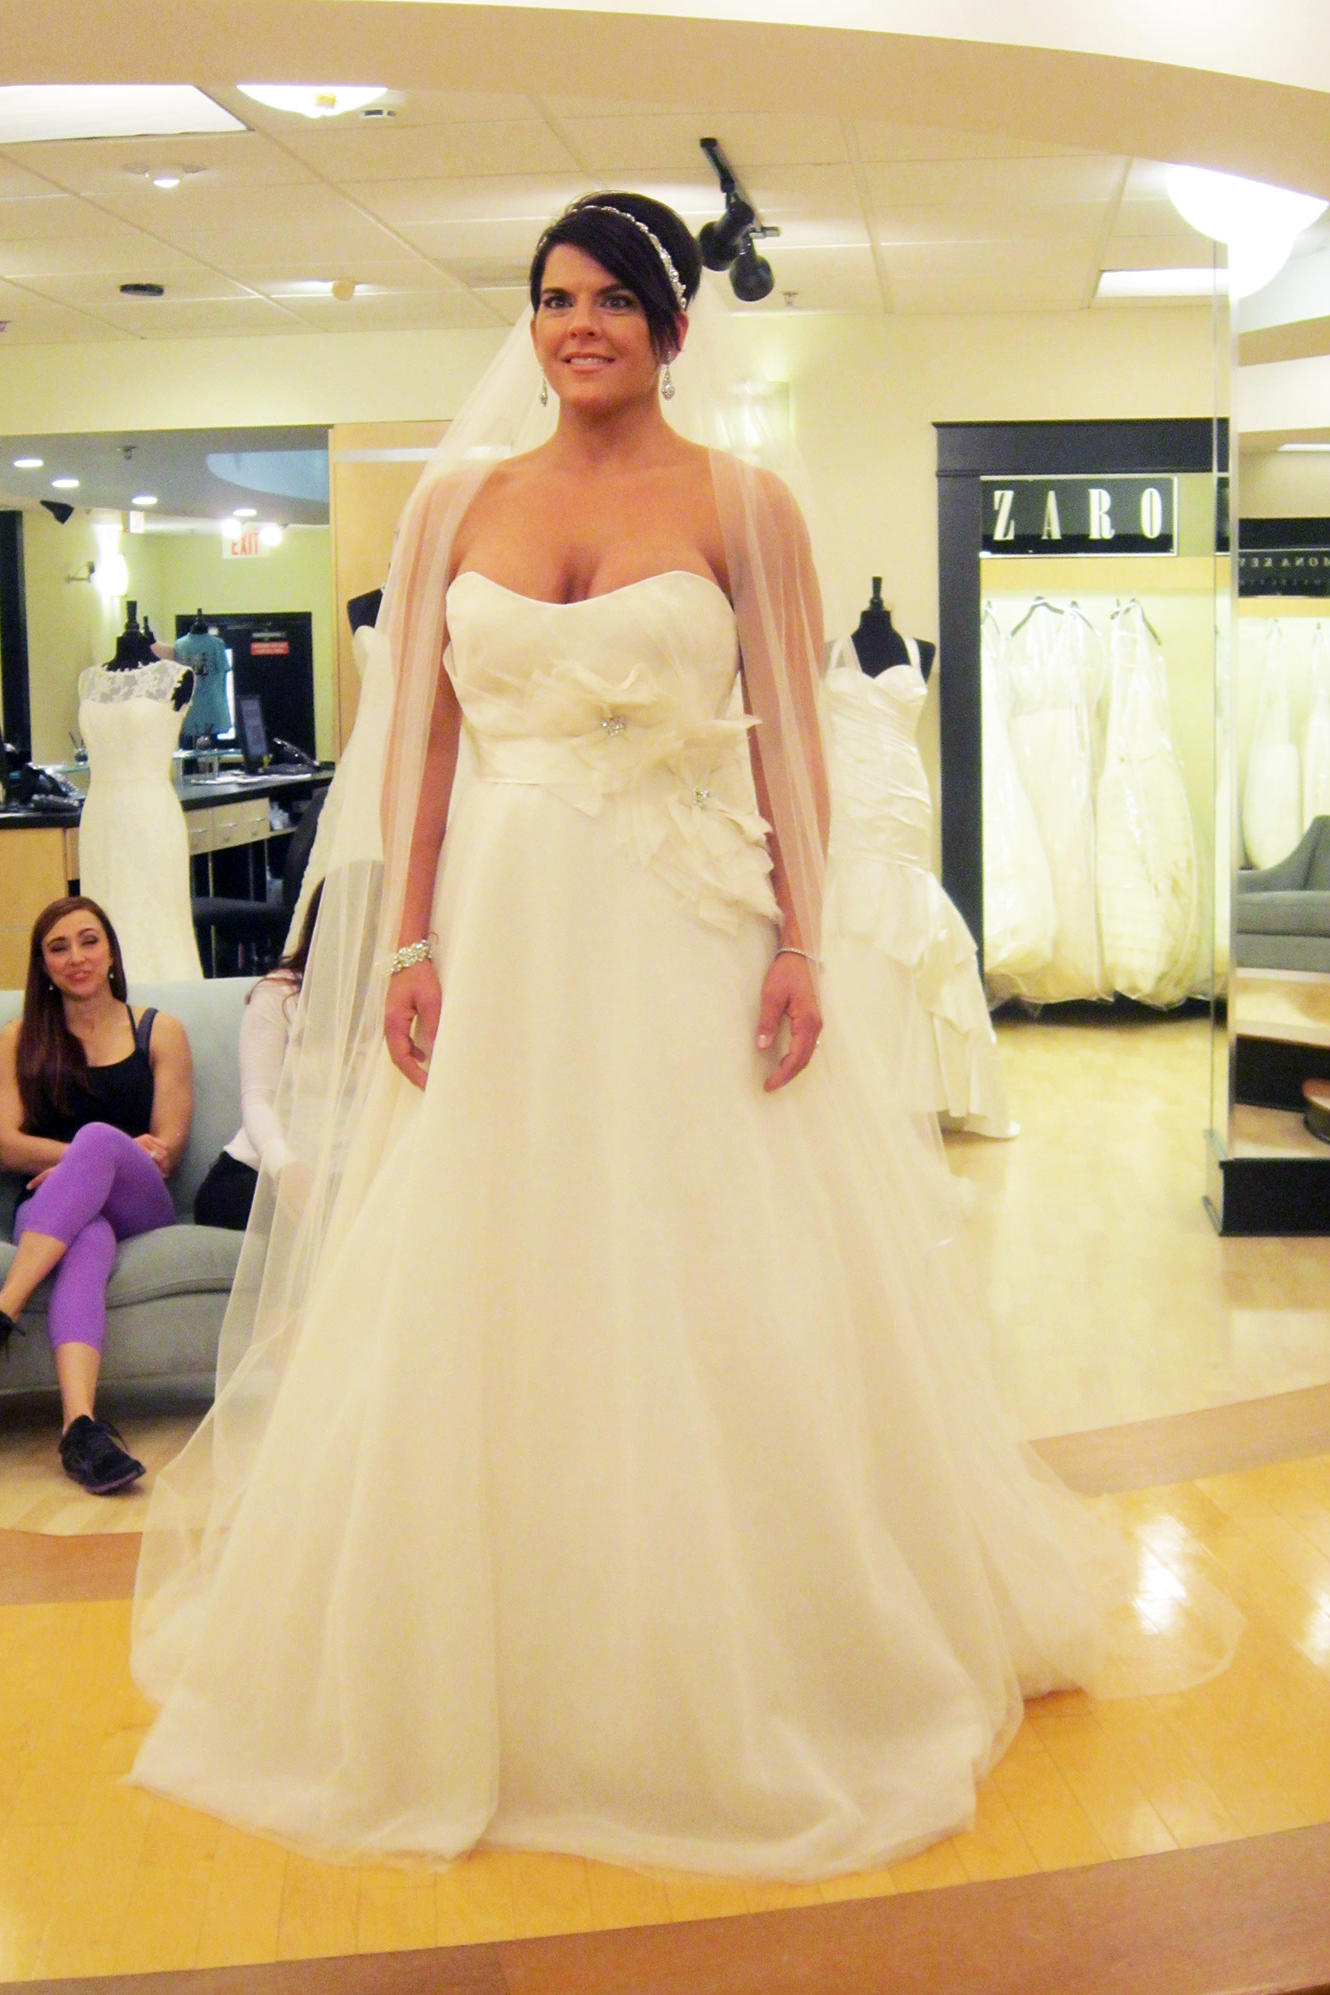 Season 7 Featured Wedding Dresses, Part 1 | Say Yes to the Dress ...